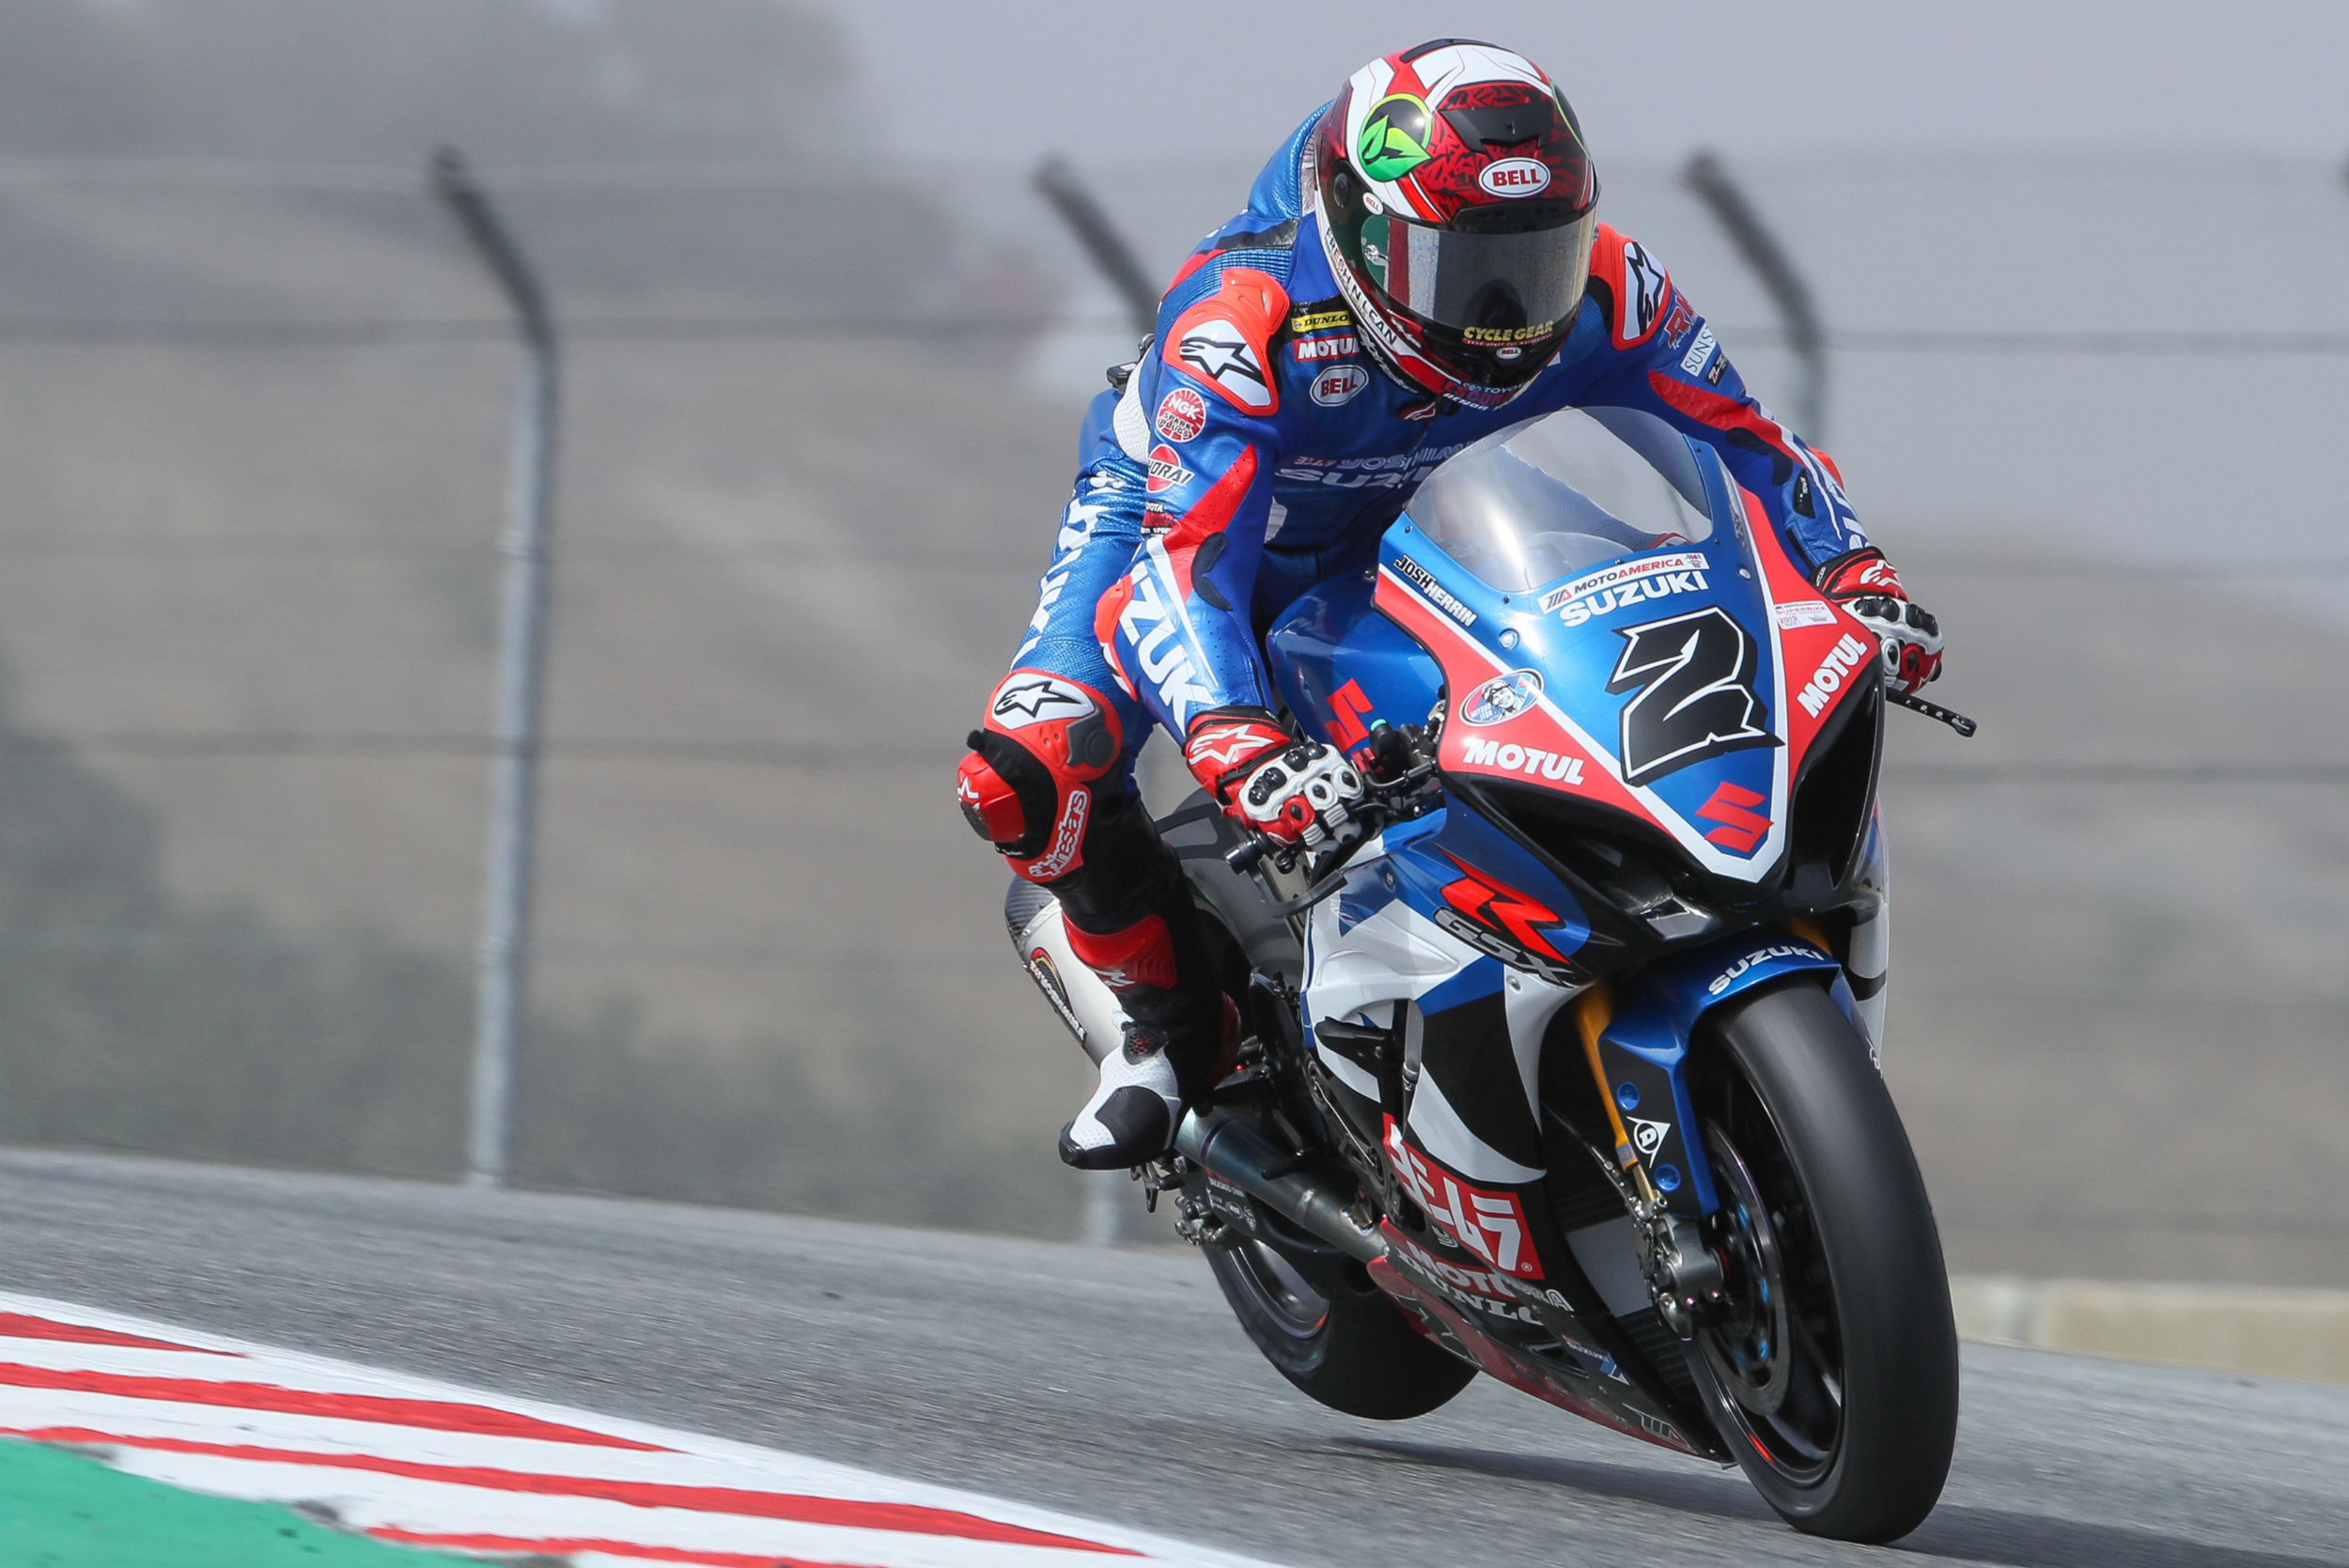 Josh Herrin (#2) battled near the front during race two on his Suzuki GSX-R1000